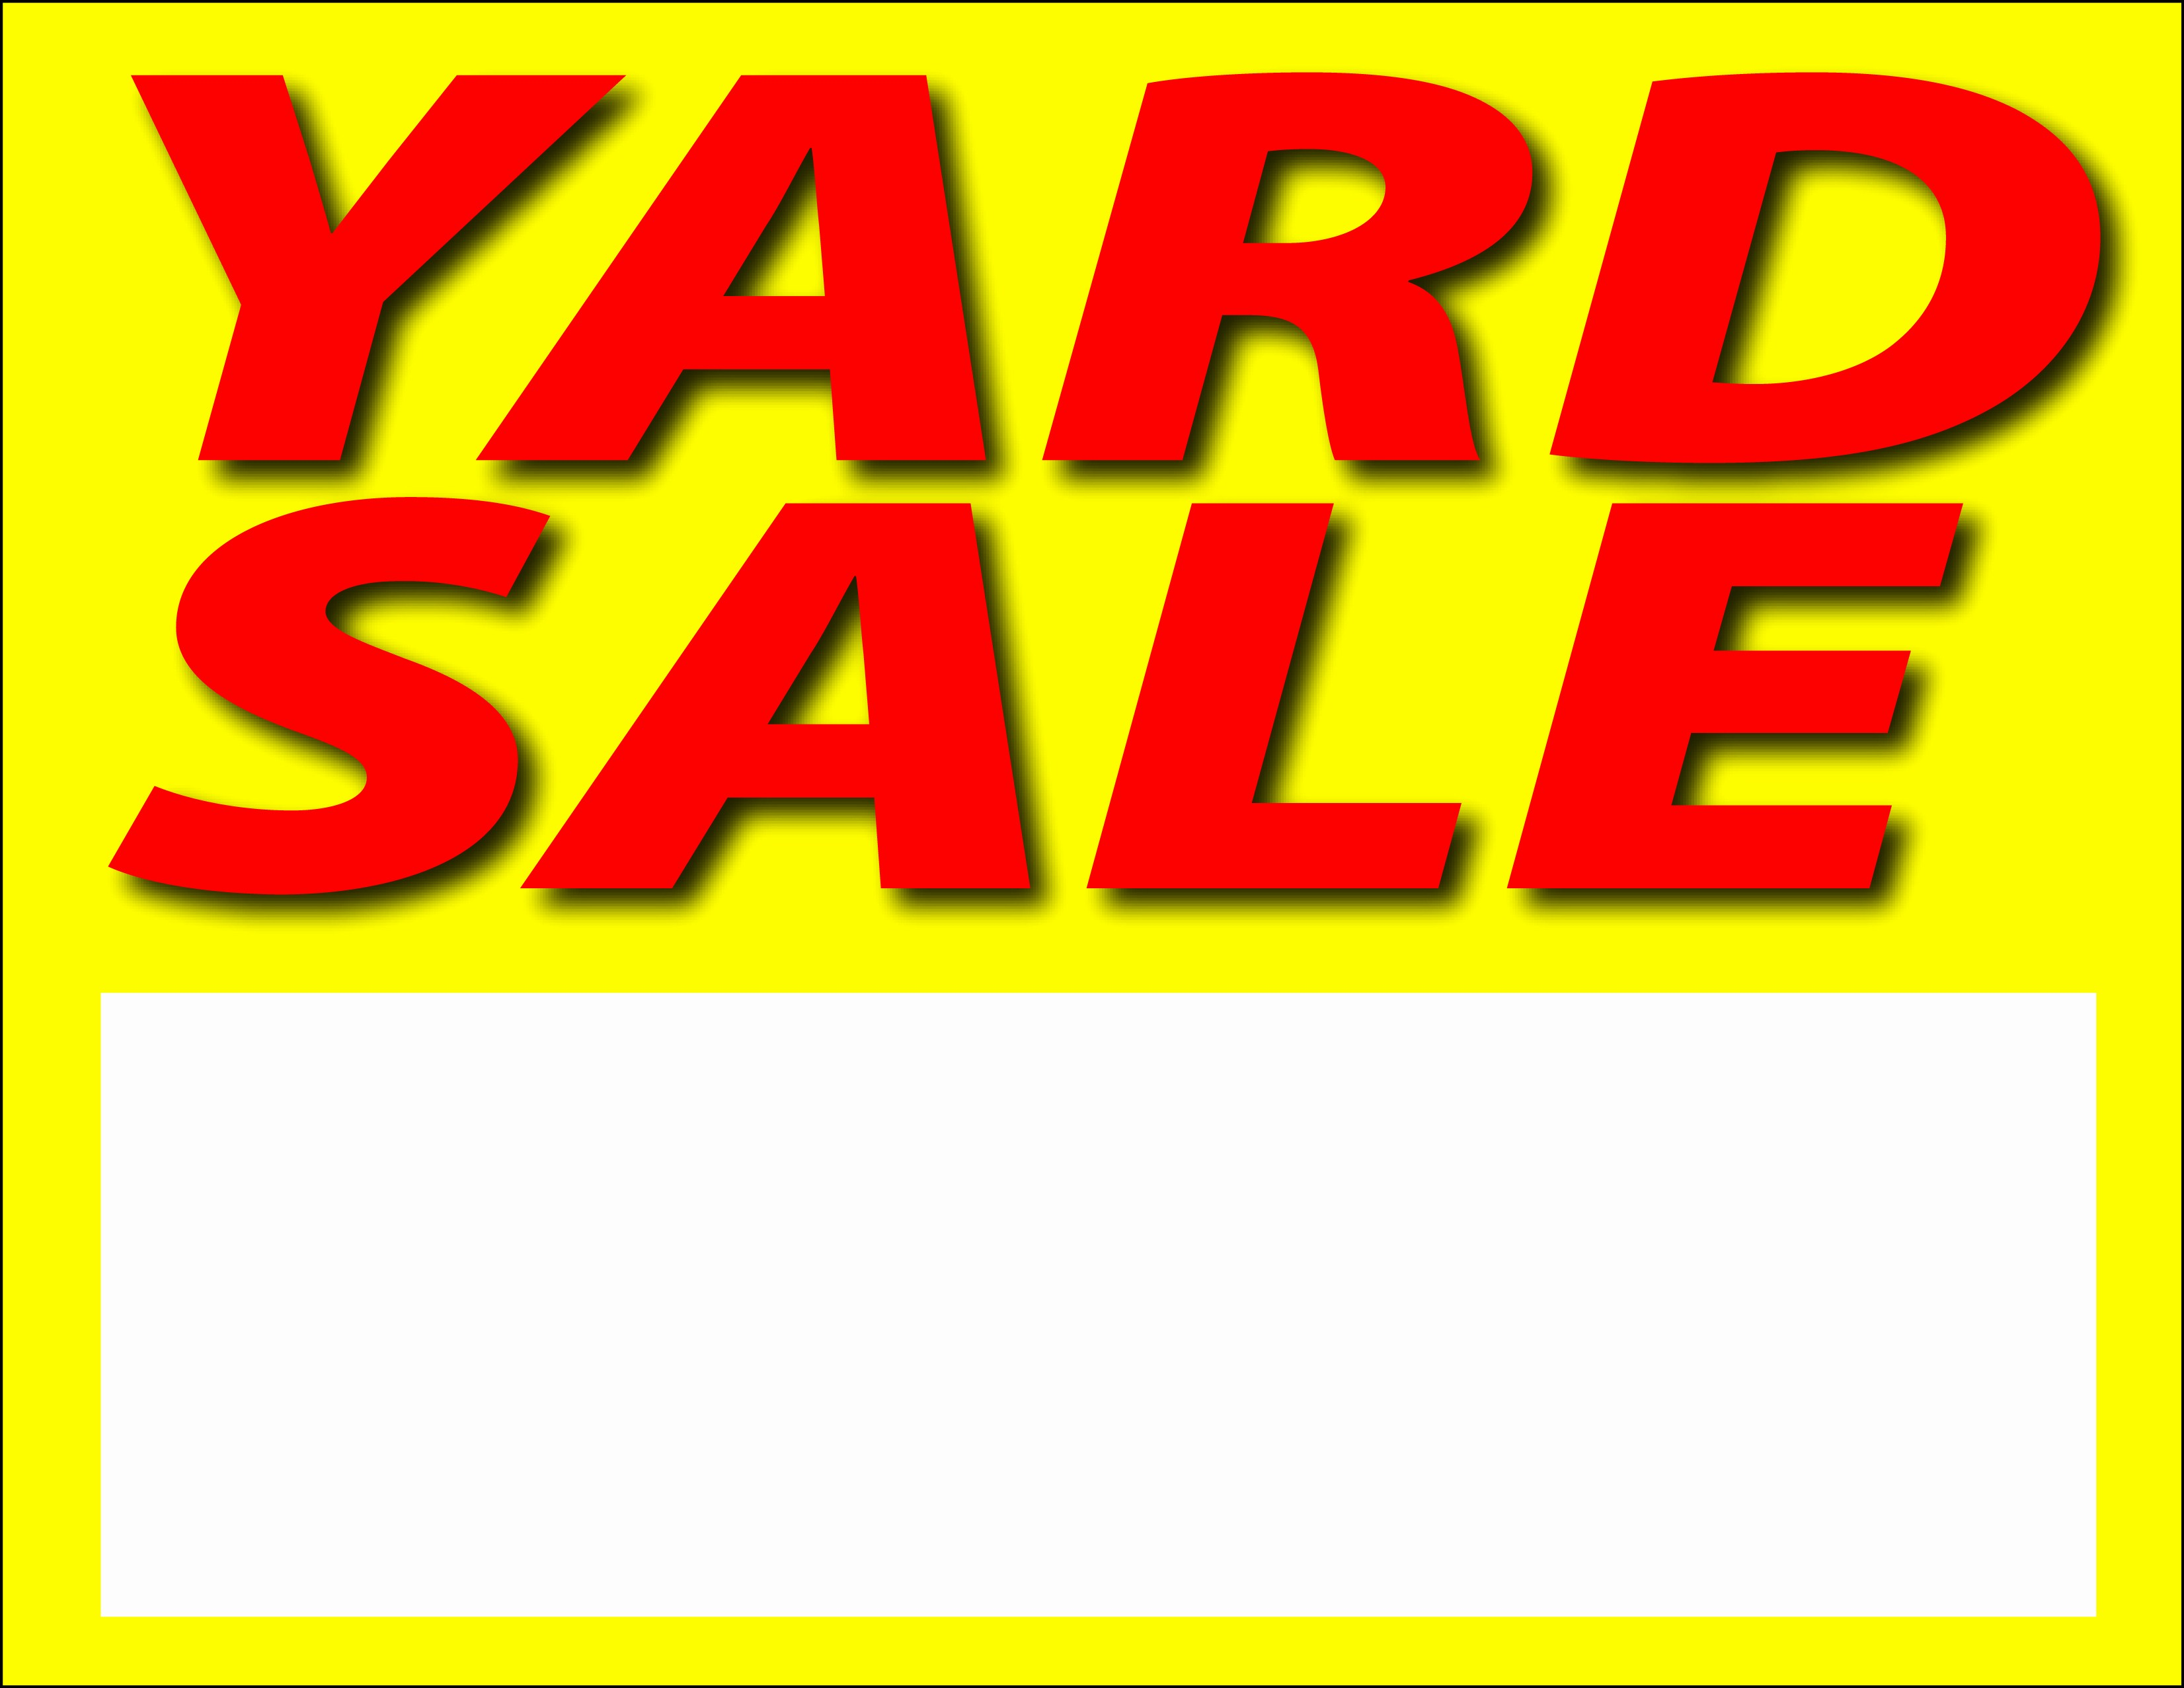 Community Yard Sale Sign Template Fresh 4 Sale